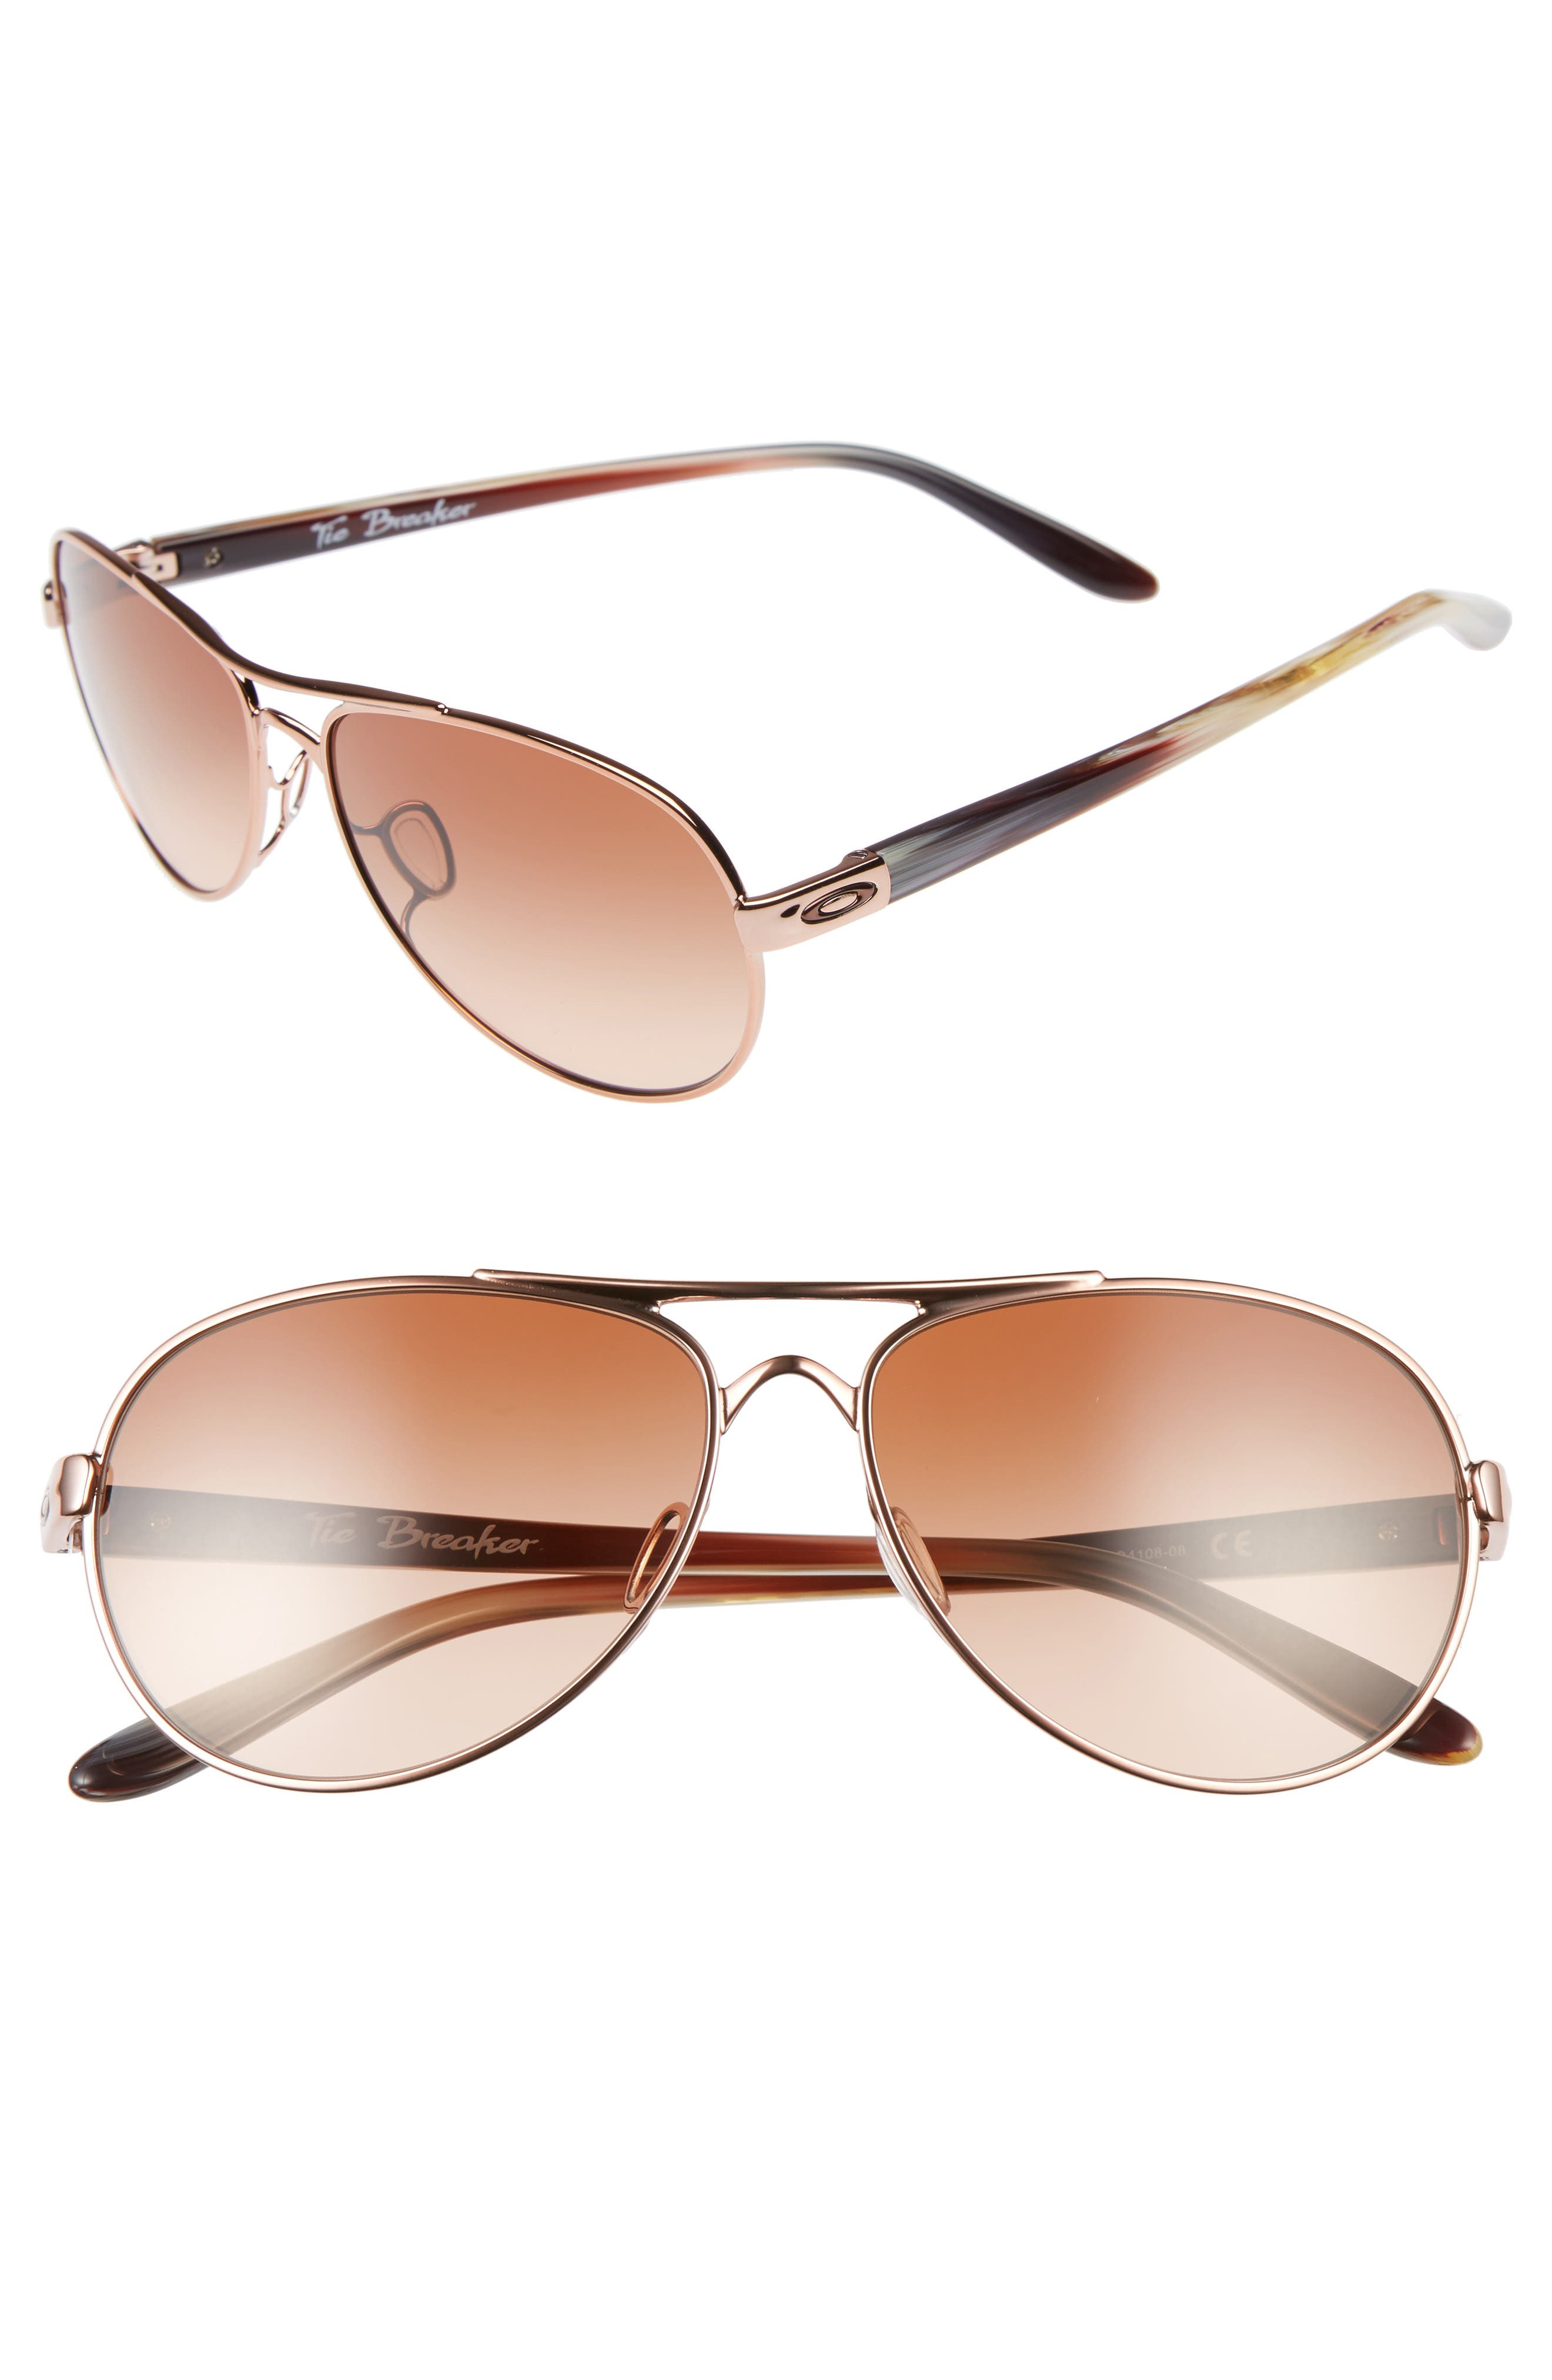 Tie Breaker 55mm Sunglasses,                             Main thumbnail 1, color,                             710